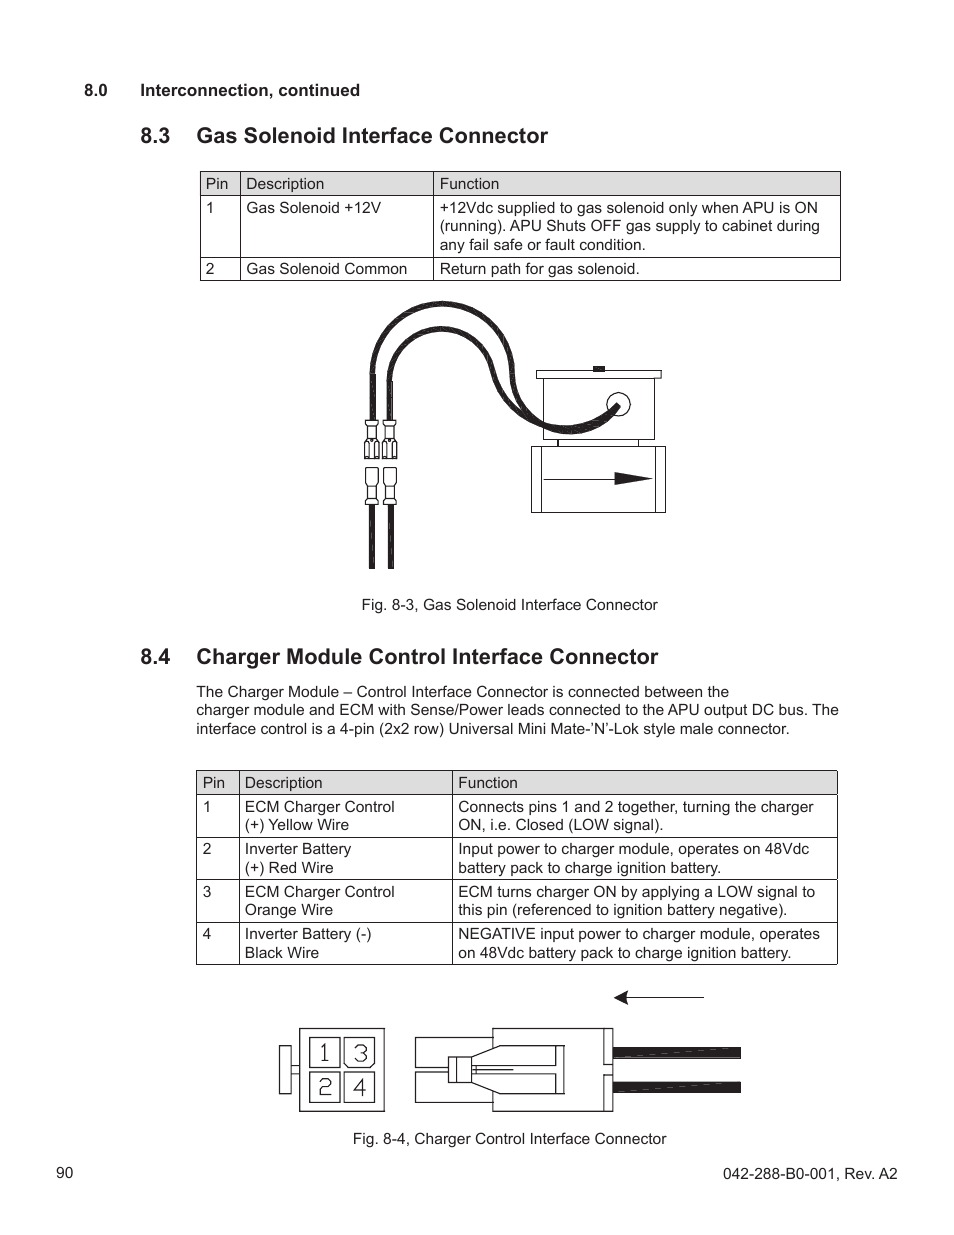 4 charger module control interface connector, 3 gas solenoid interface  connector | Alpha Technologies AlphaGen PN-6x-T 7.5kW 48Vdc User Manual |  Page 90 / ...